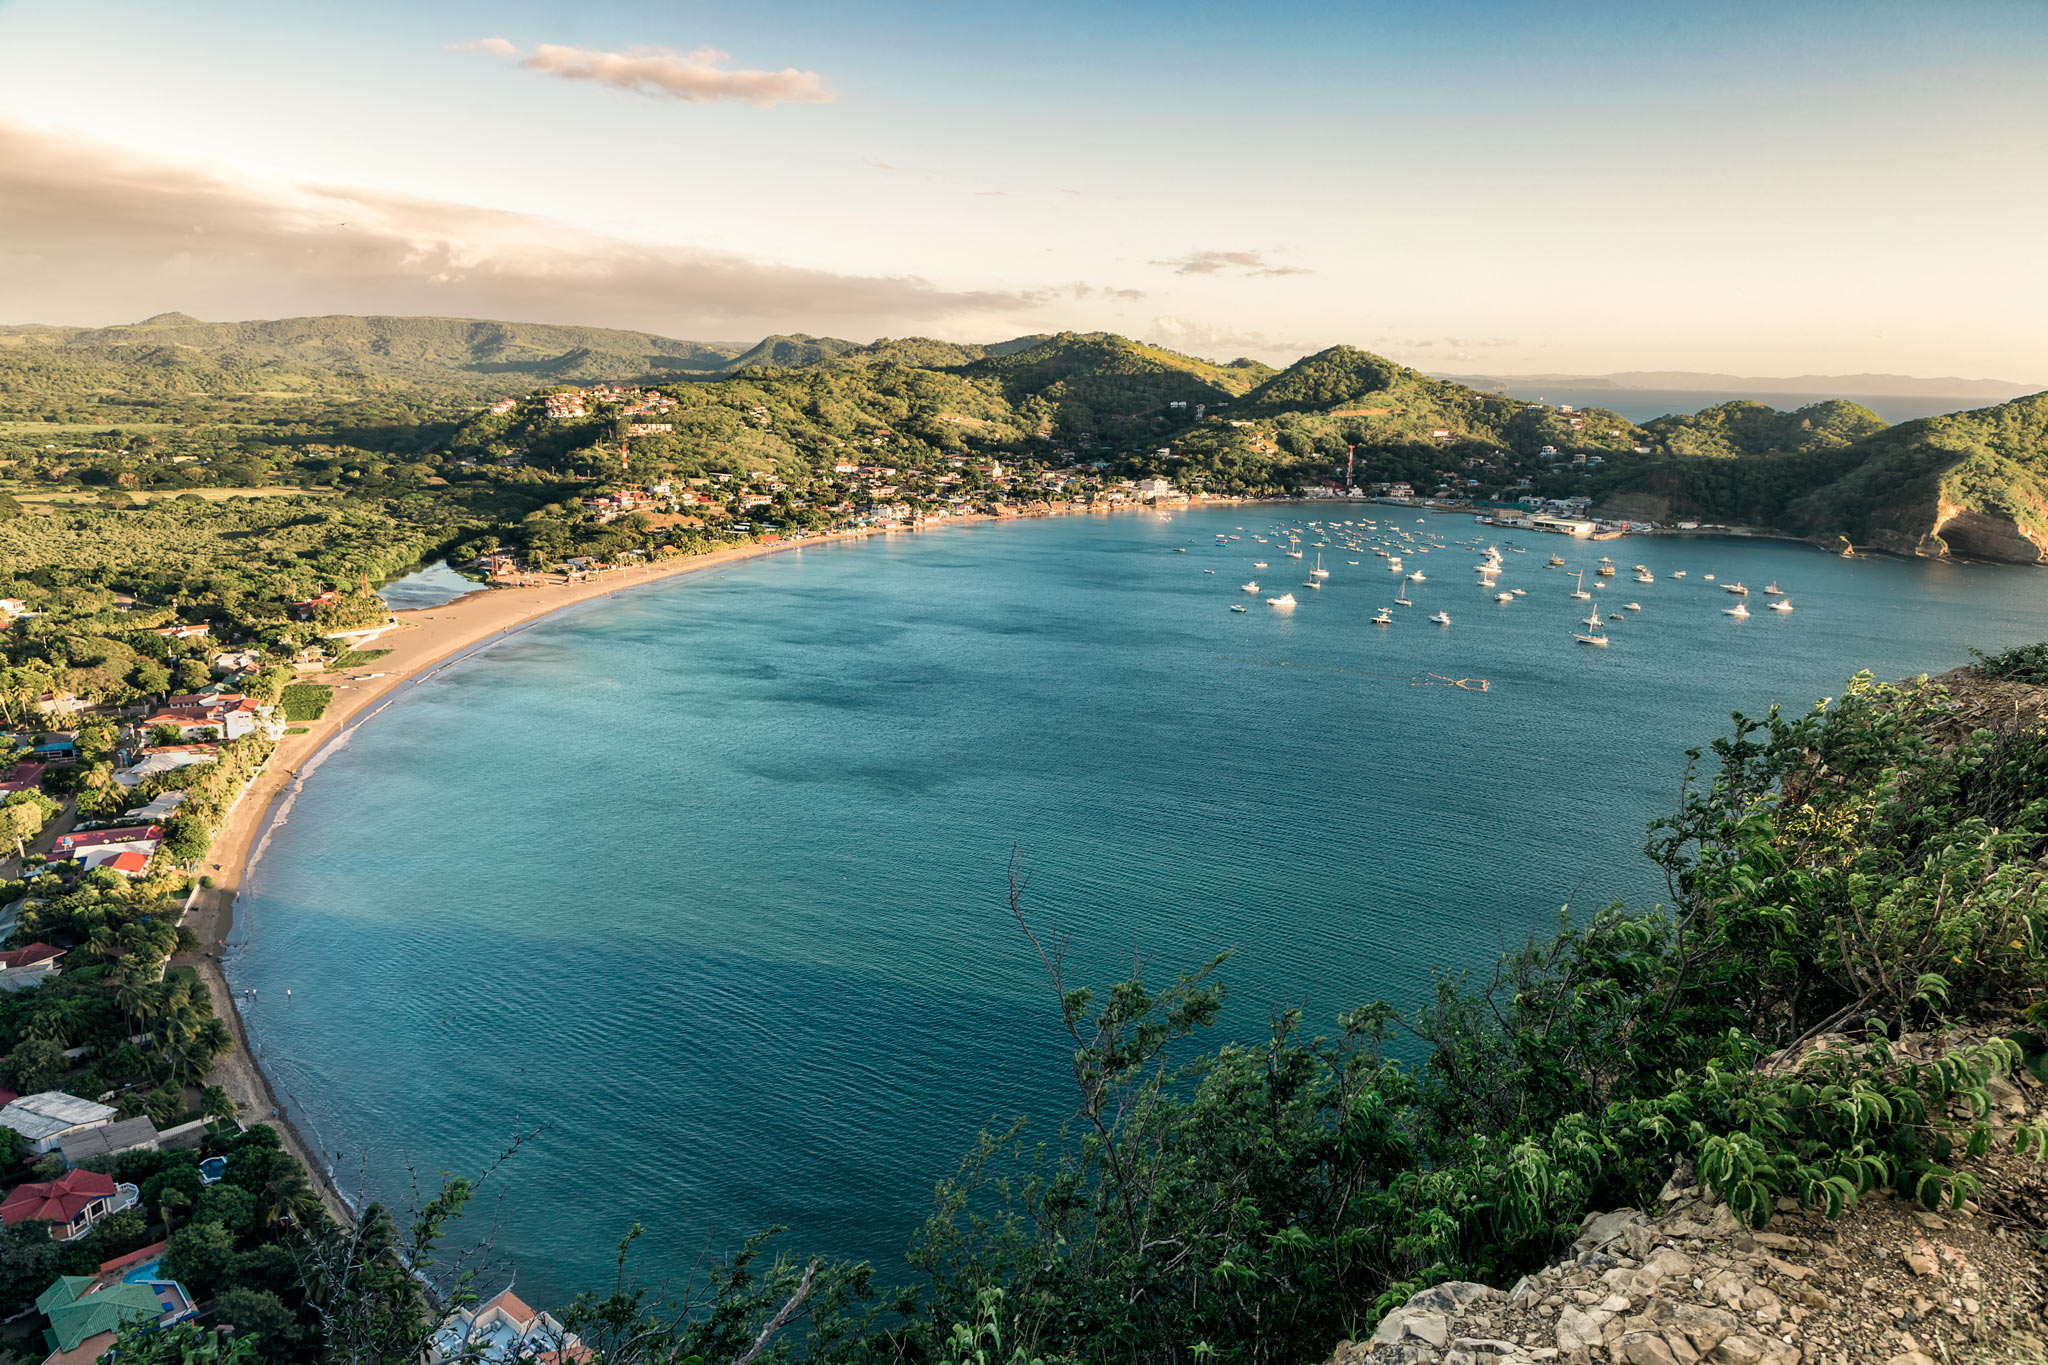 Bay of San Juan del Sur.